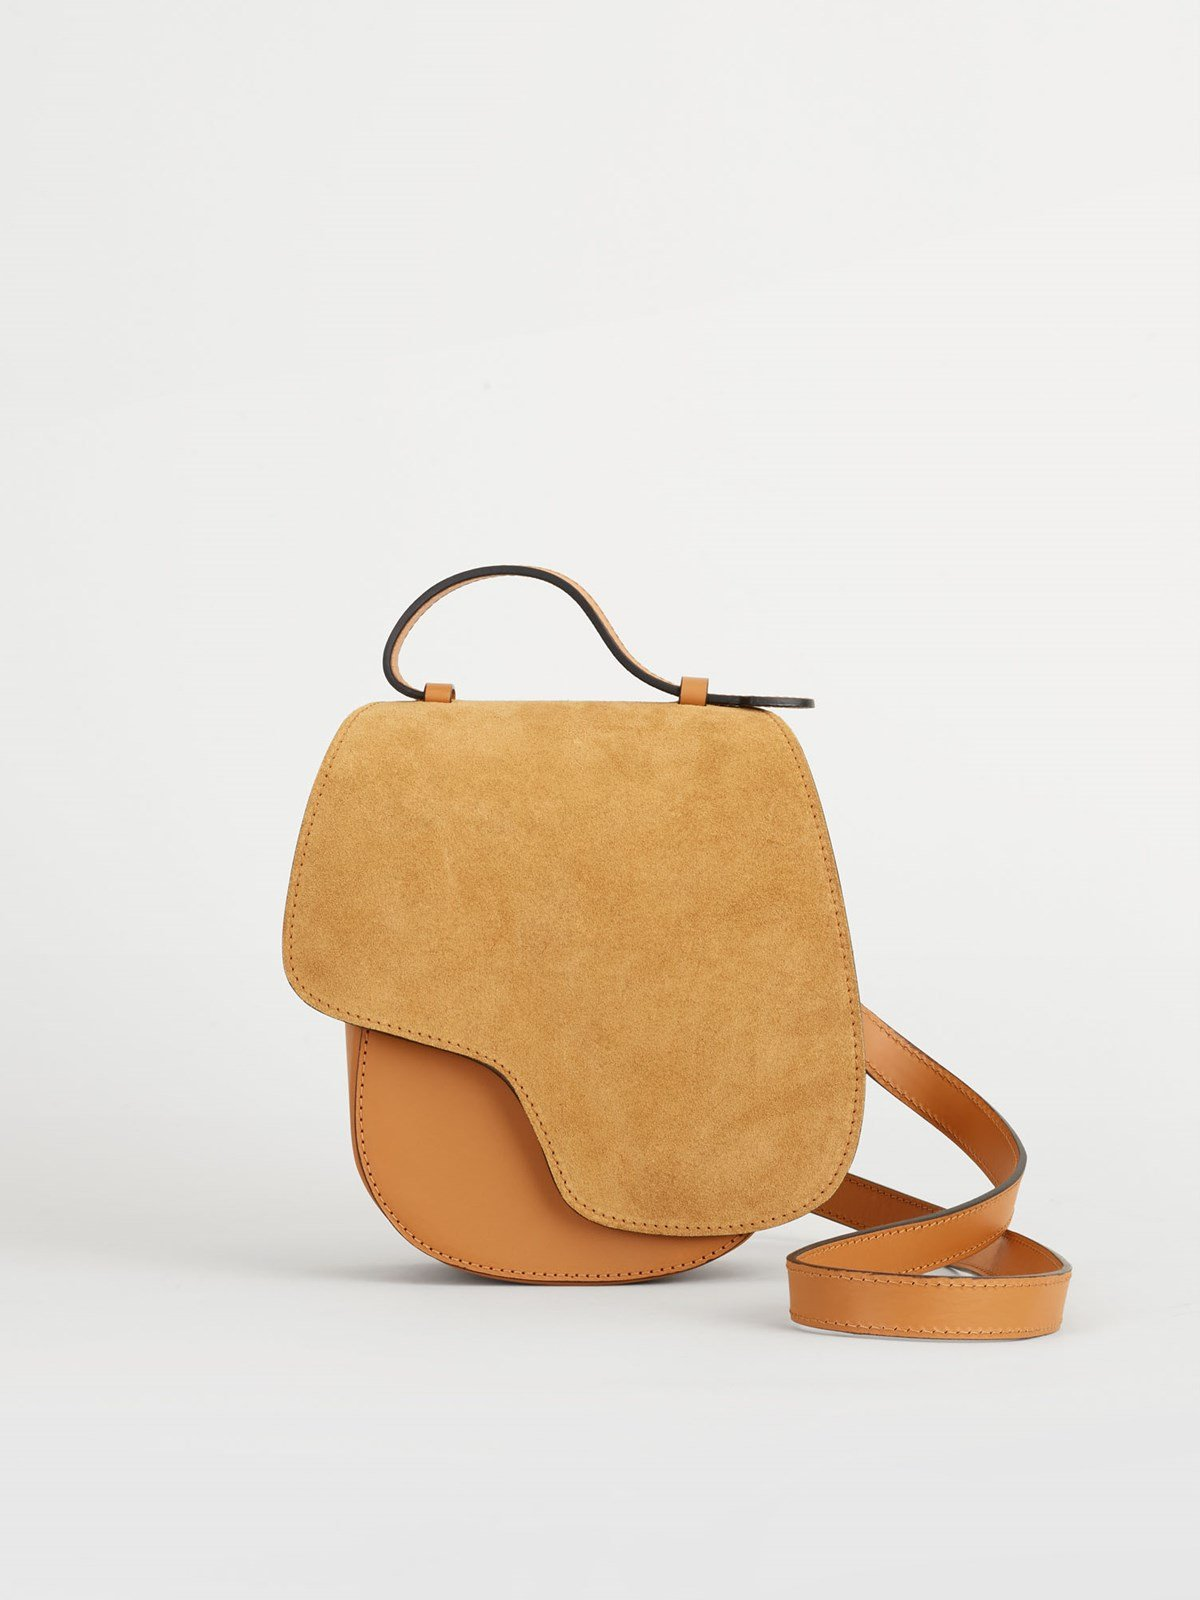 Carrara Terra Crossbody bag